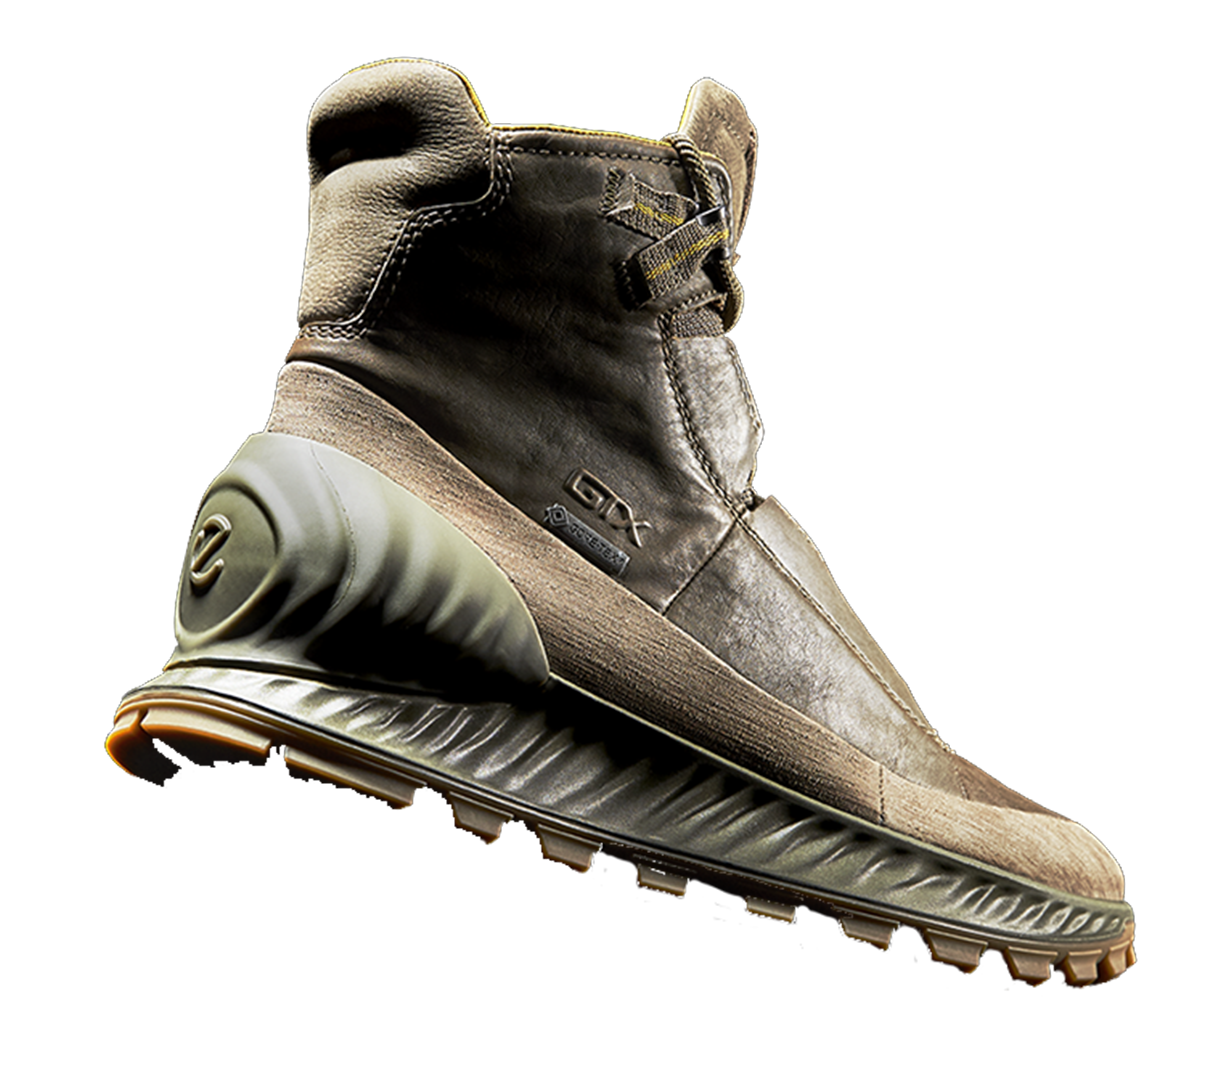 Ecco Exostrike Collection Shoes D Island Cut Engineer Low Boots Black The Heel Cup Is Not Just Adding To Modern Aesthetics Guard Wraps Providing Protective Support And A Snug Fit